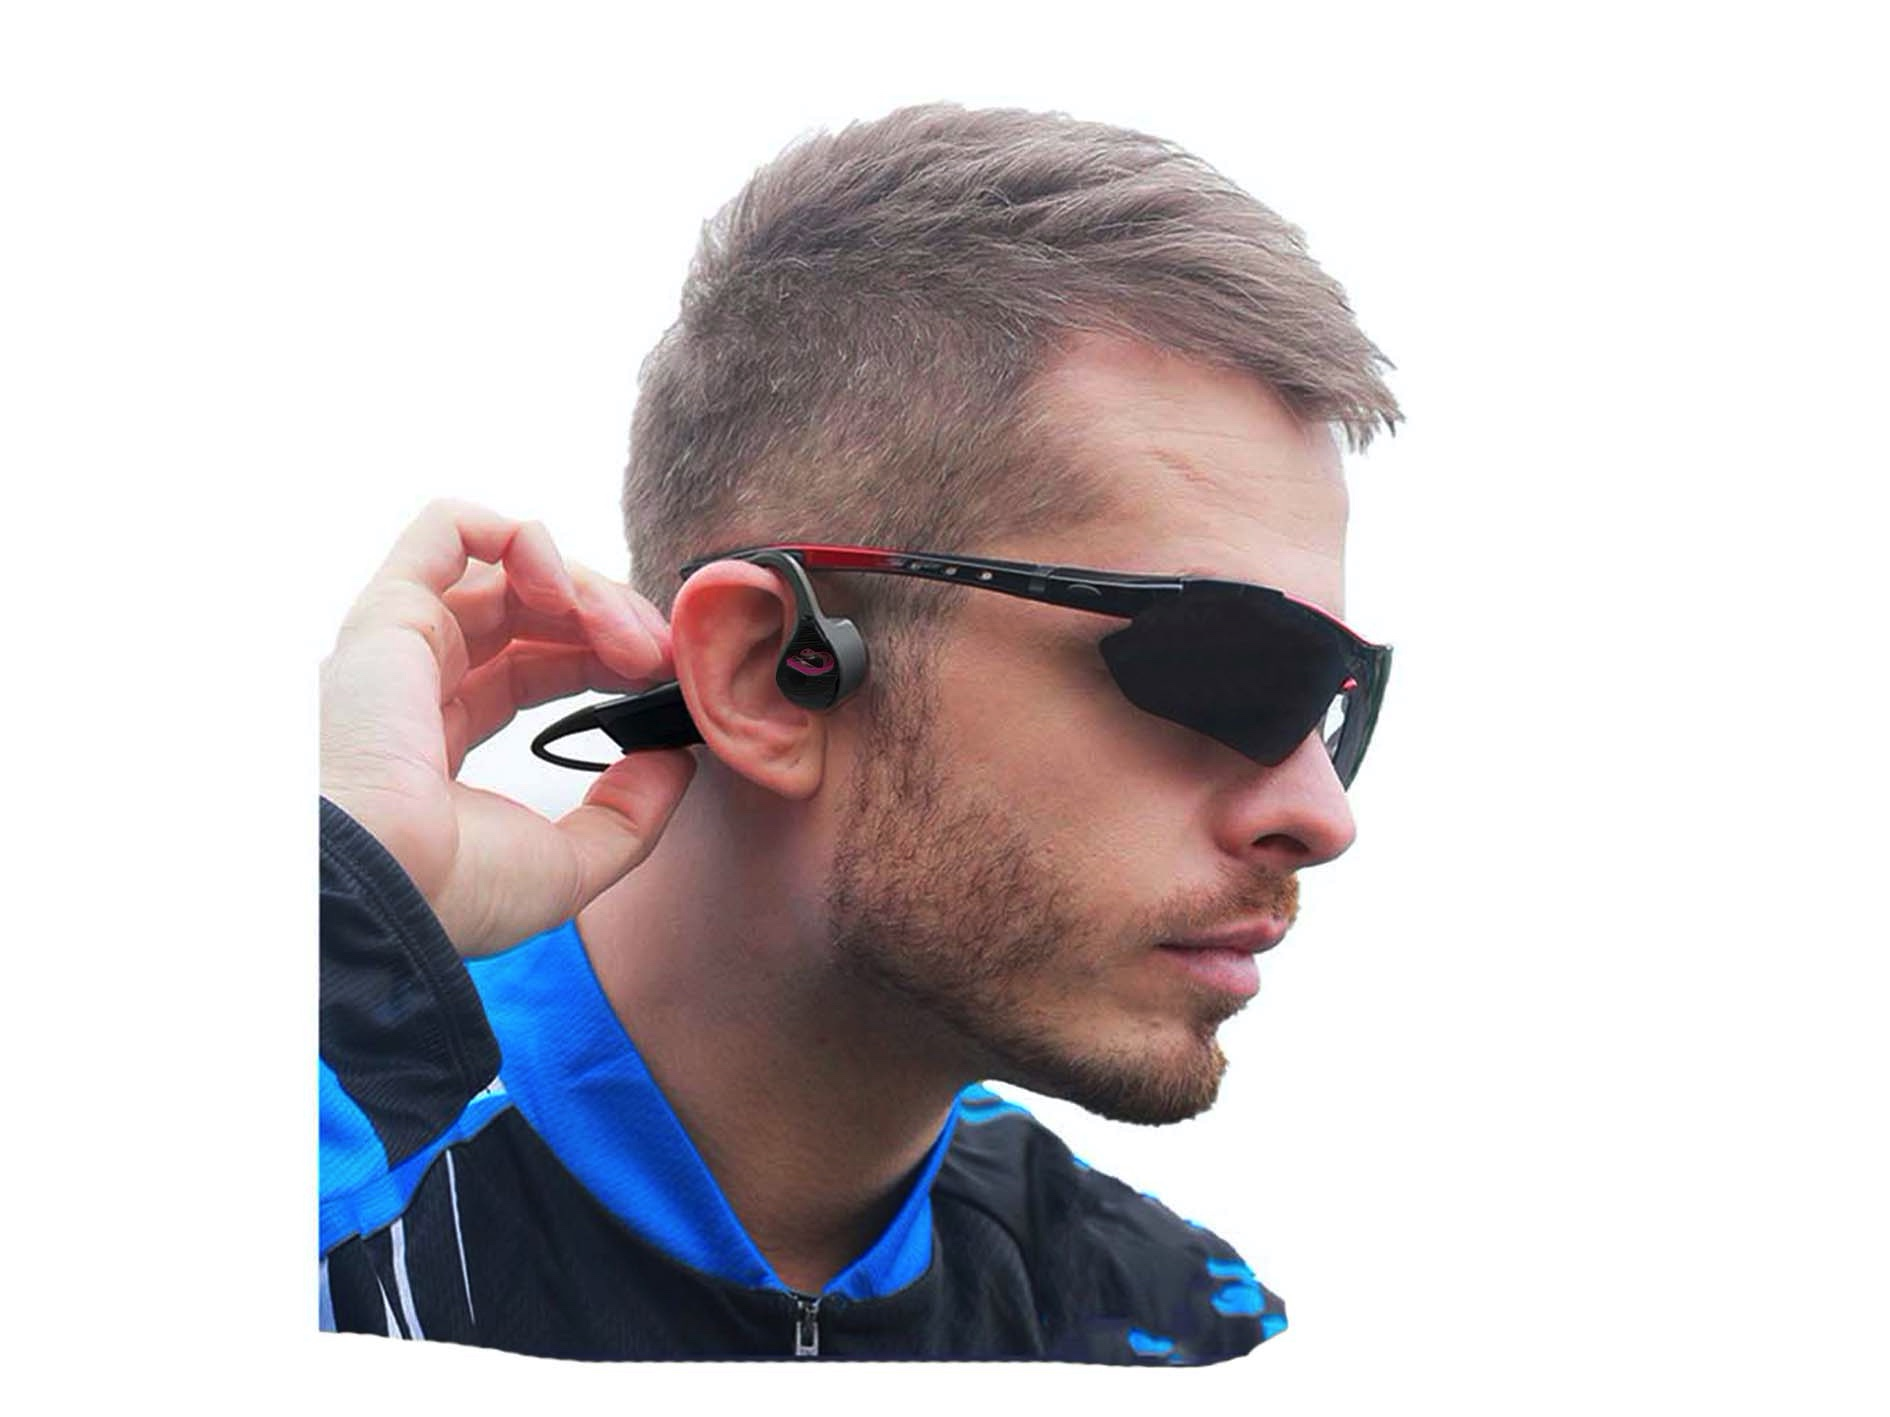 Pro9 Bone Conduction a Special Kind of Wireless Headphone That Allow The User to Hear Music & Calls (Pro9 Bone Conduction)